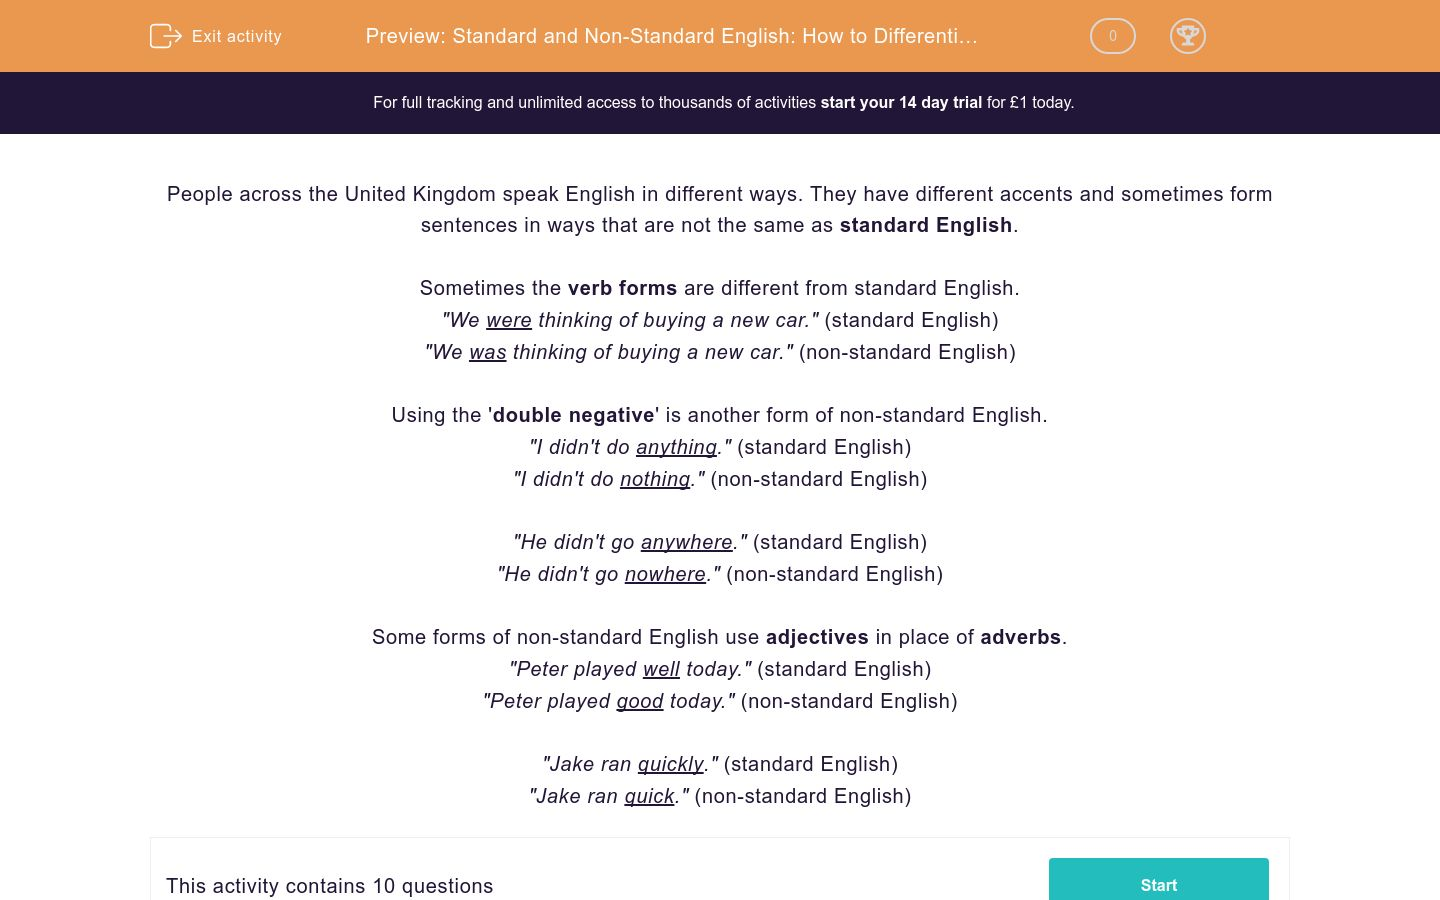 'Standard and Non-Standard English: How to Differentiate 2' worksheet